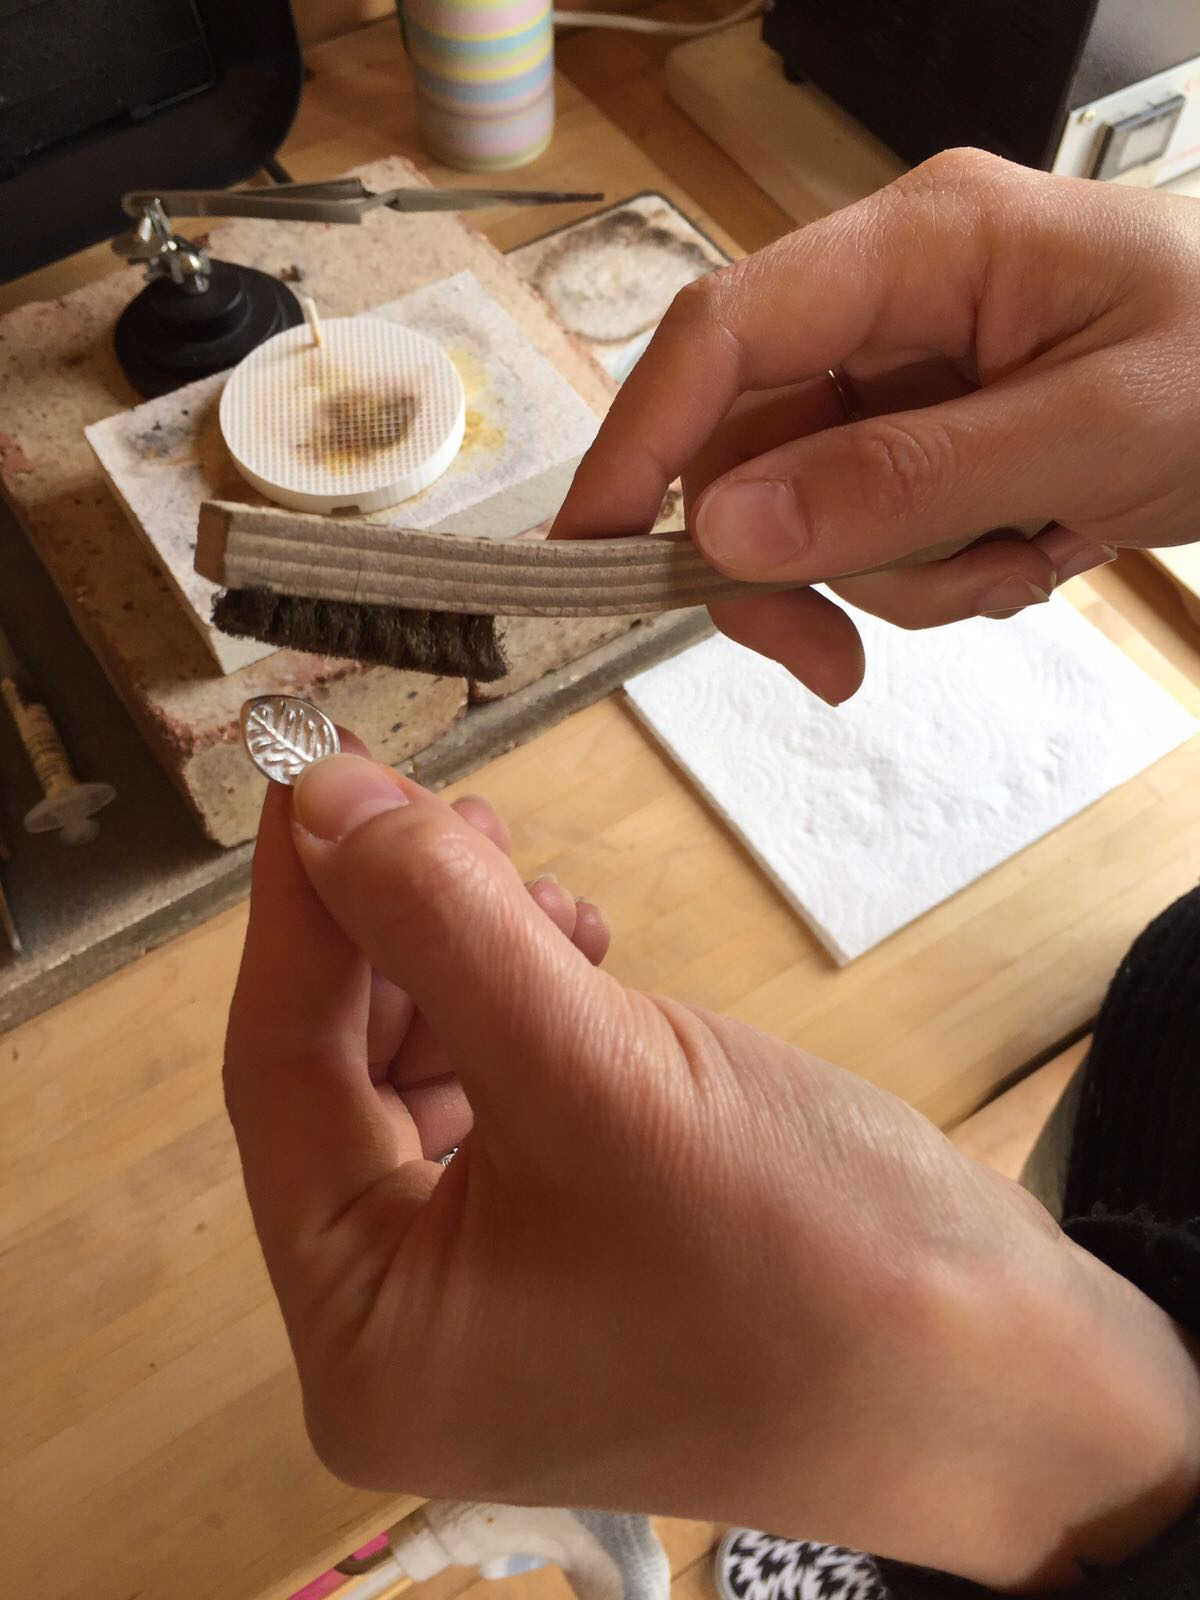 And as if by magic... the brass brush revealed beautiful shiny silver!